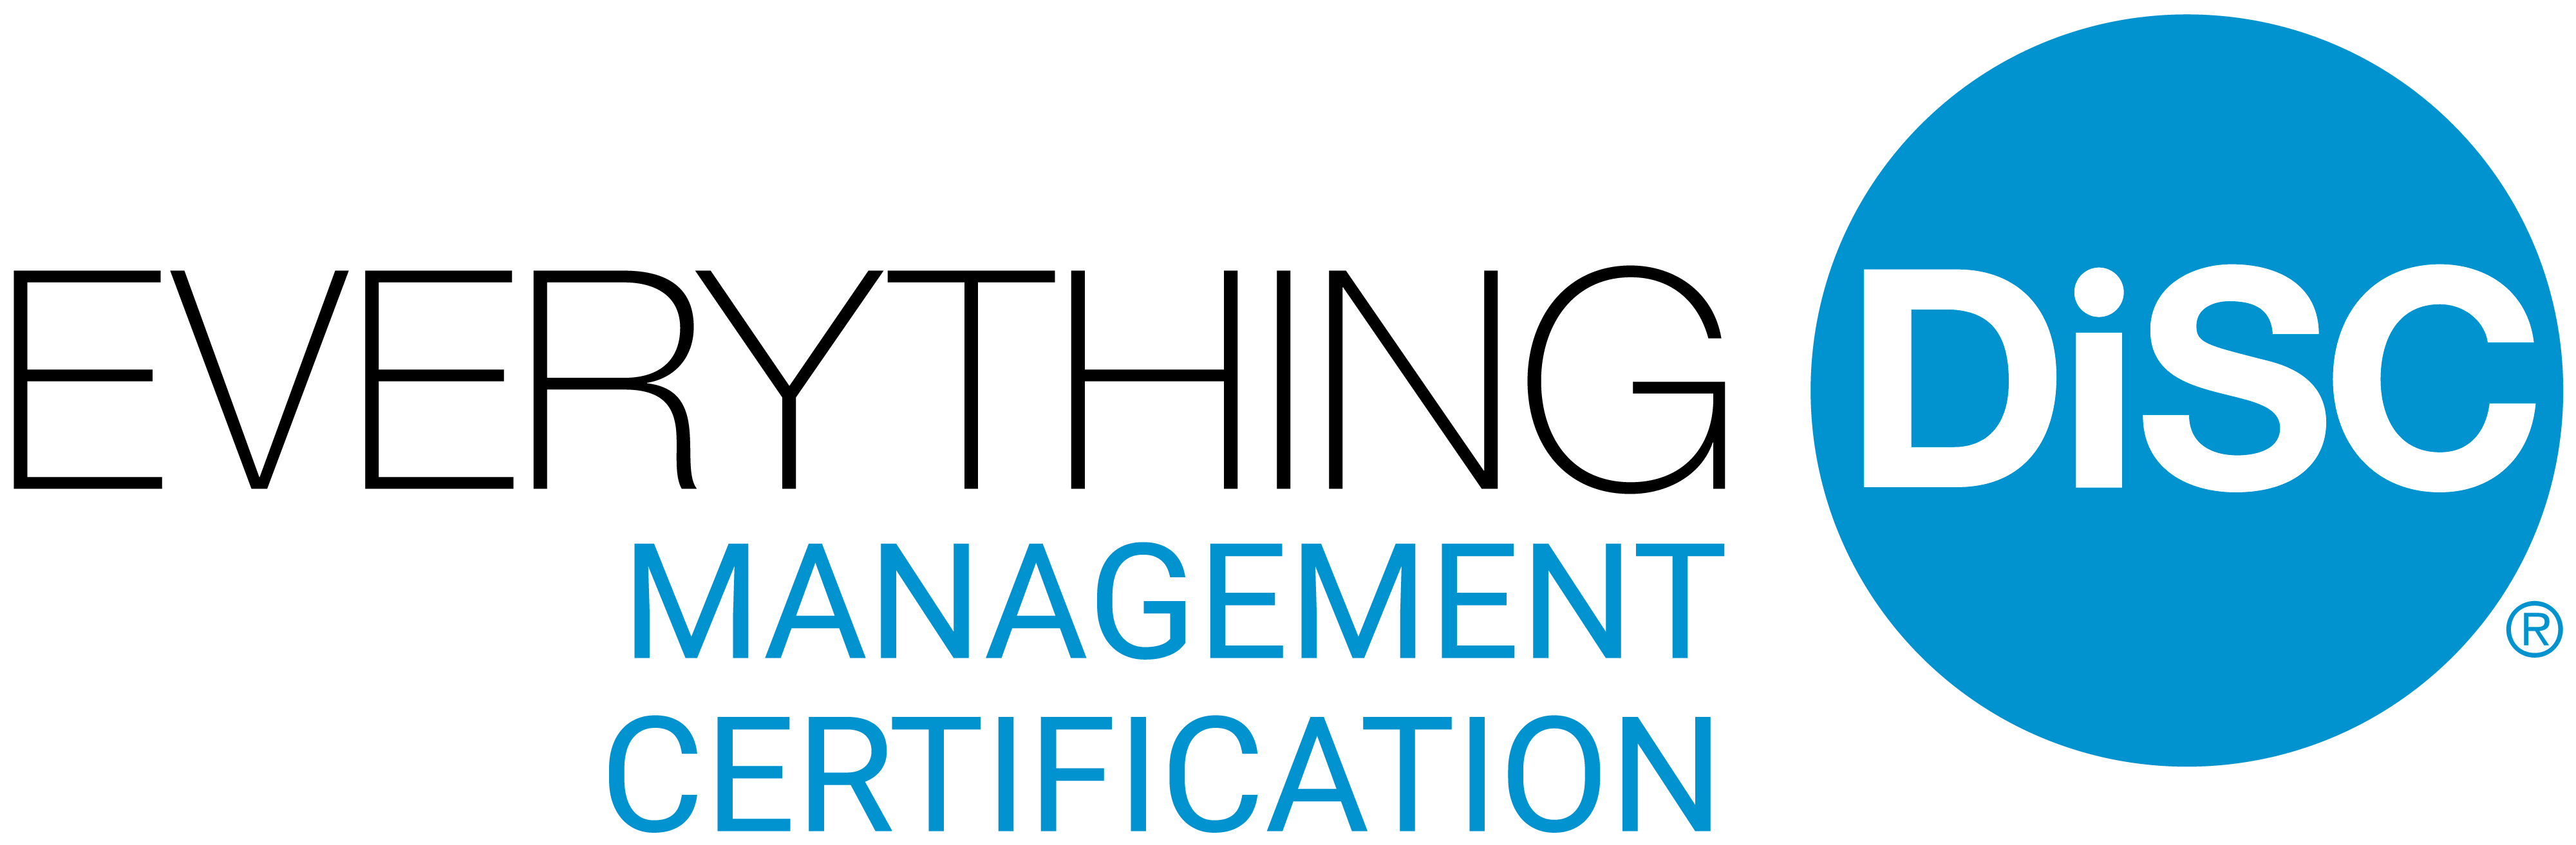 Everything DiSC® Management Certification (Online Course)